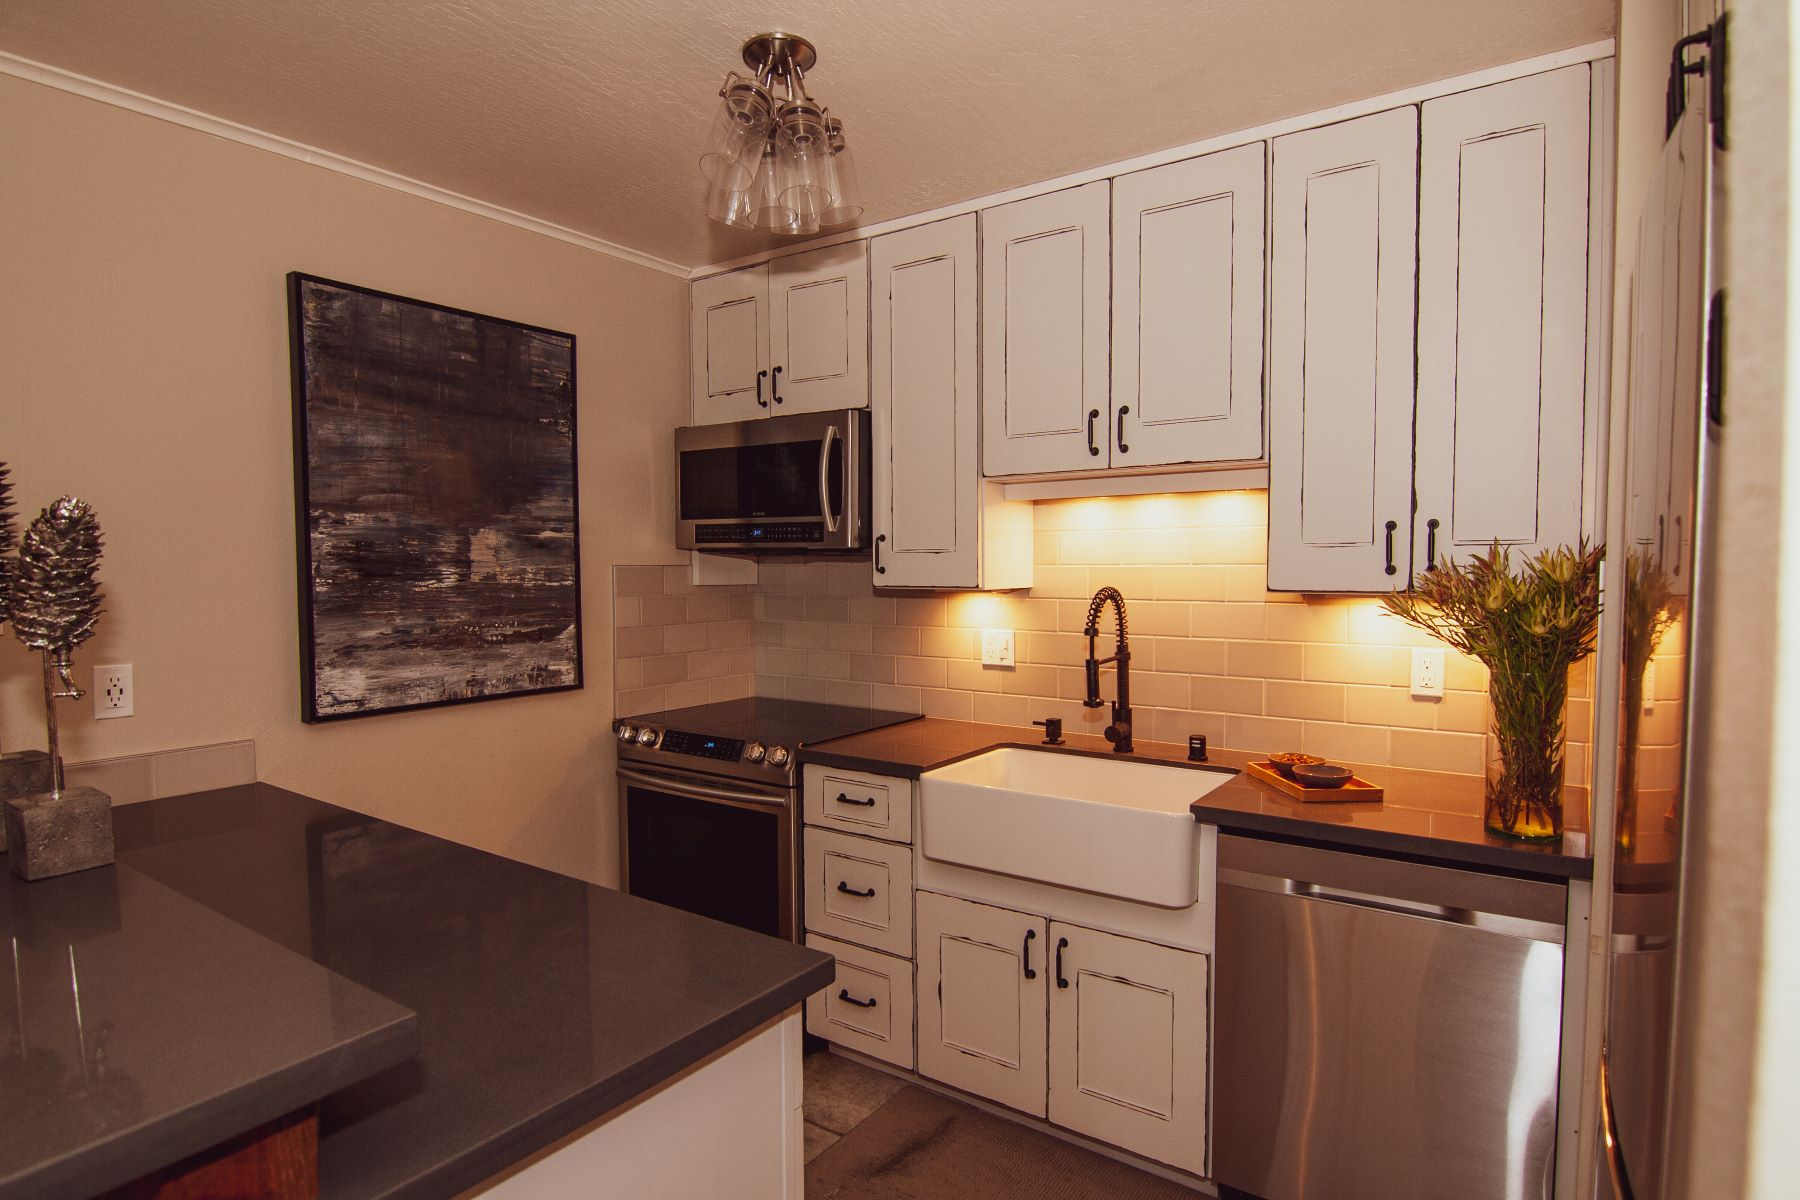 Additional photo for property listing at 872 Tanager Street Unit #60, Incline Village, Nevada 872 Tanager Street #60 Incline Village, Nevada 89451 United States